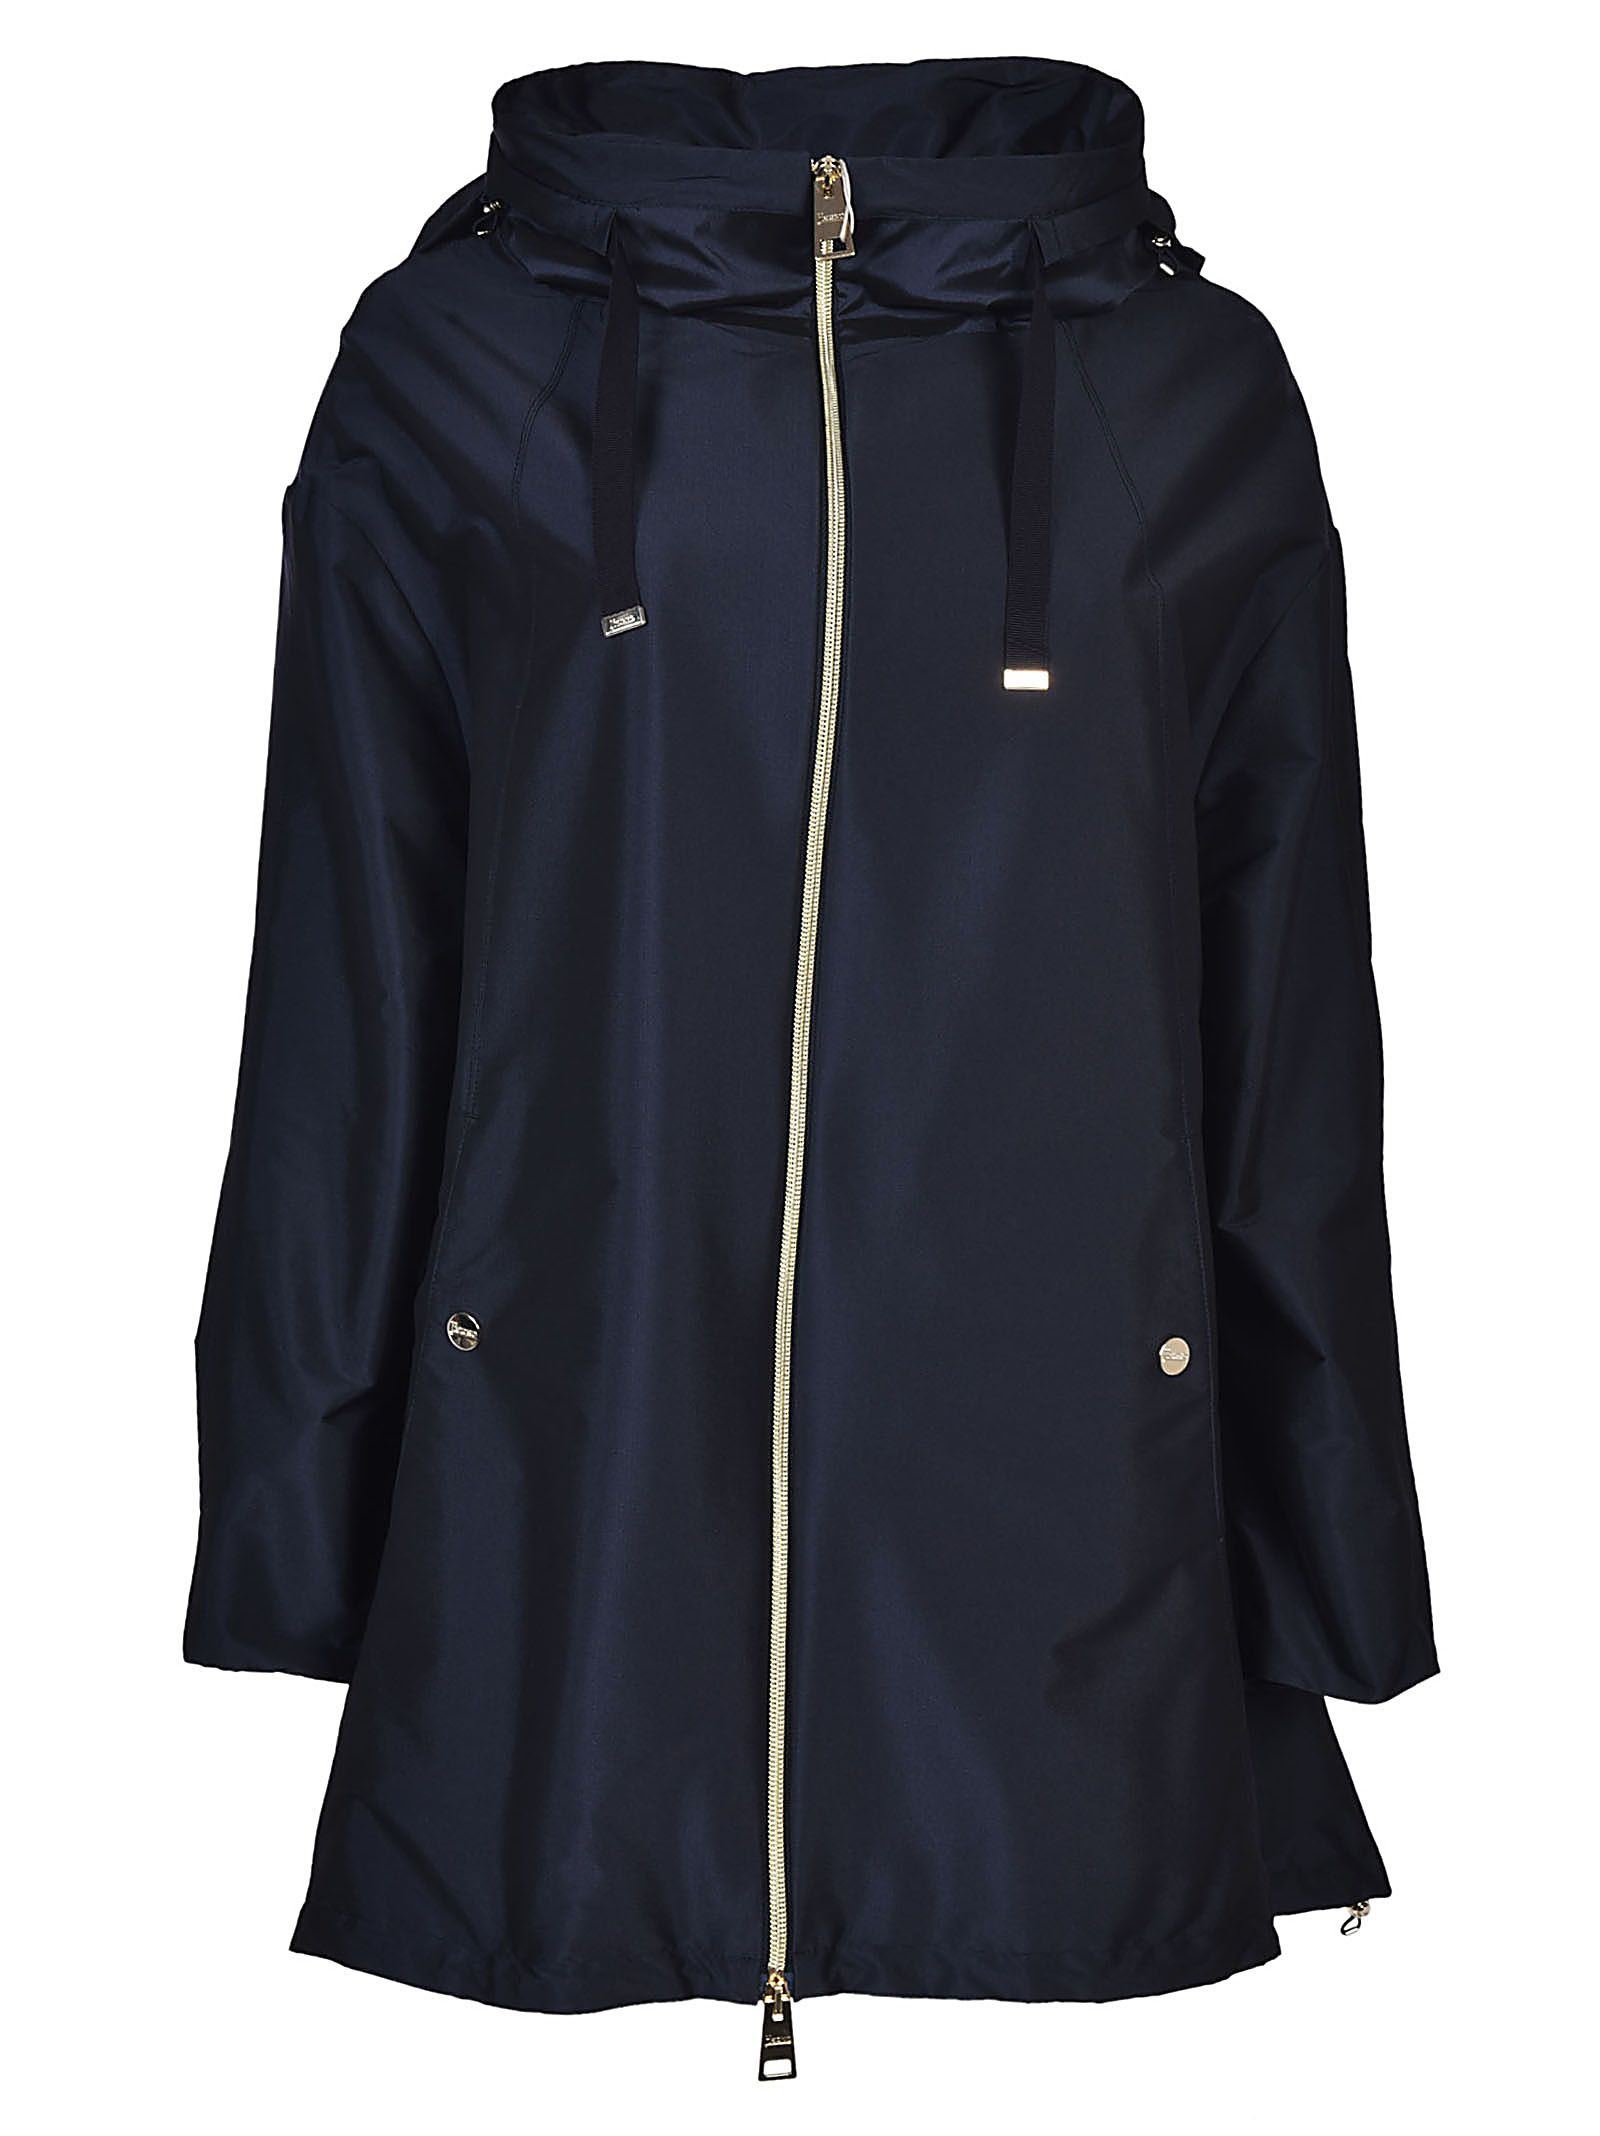 Herno Oversized Hooded Jacket